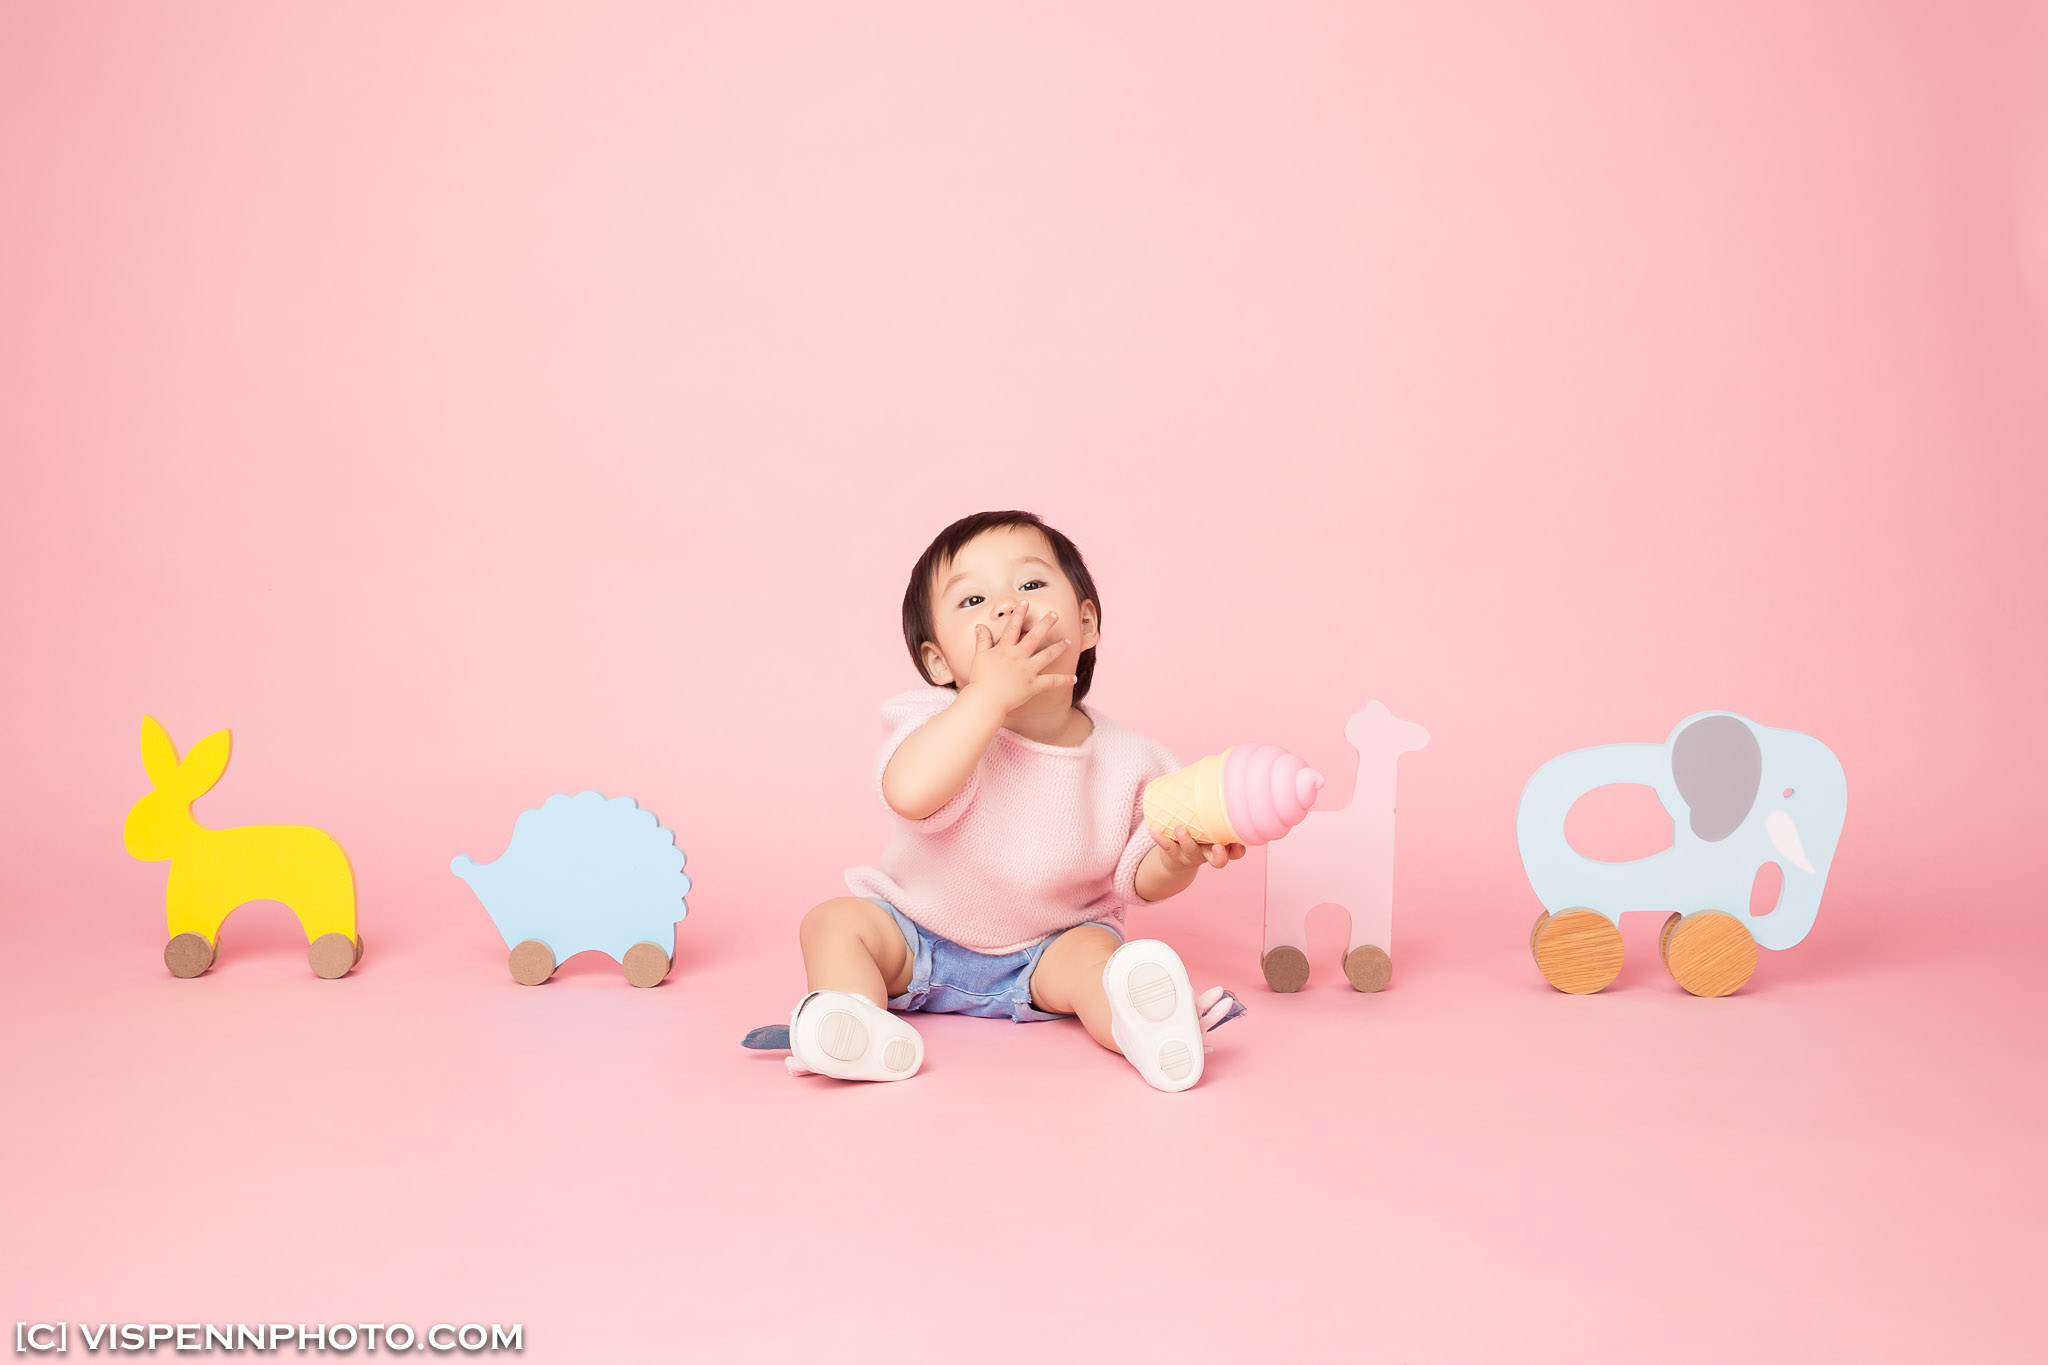 Melbourne Newborn Baby Family Photo BaoBao VISPENN 墨尔本 儿童 宝宝 百天照 满月照 孕妇照 全家福 KIDS ElaineZHOU 1987 VISPENN